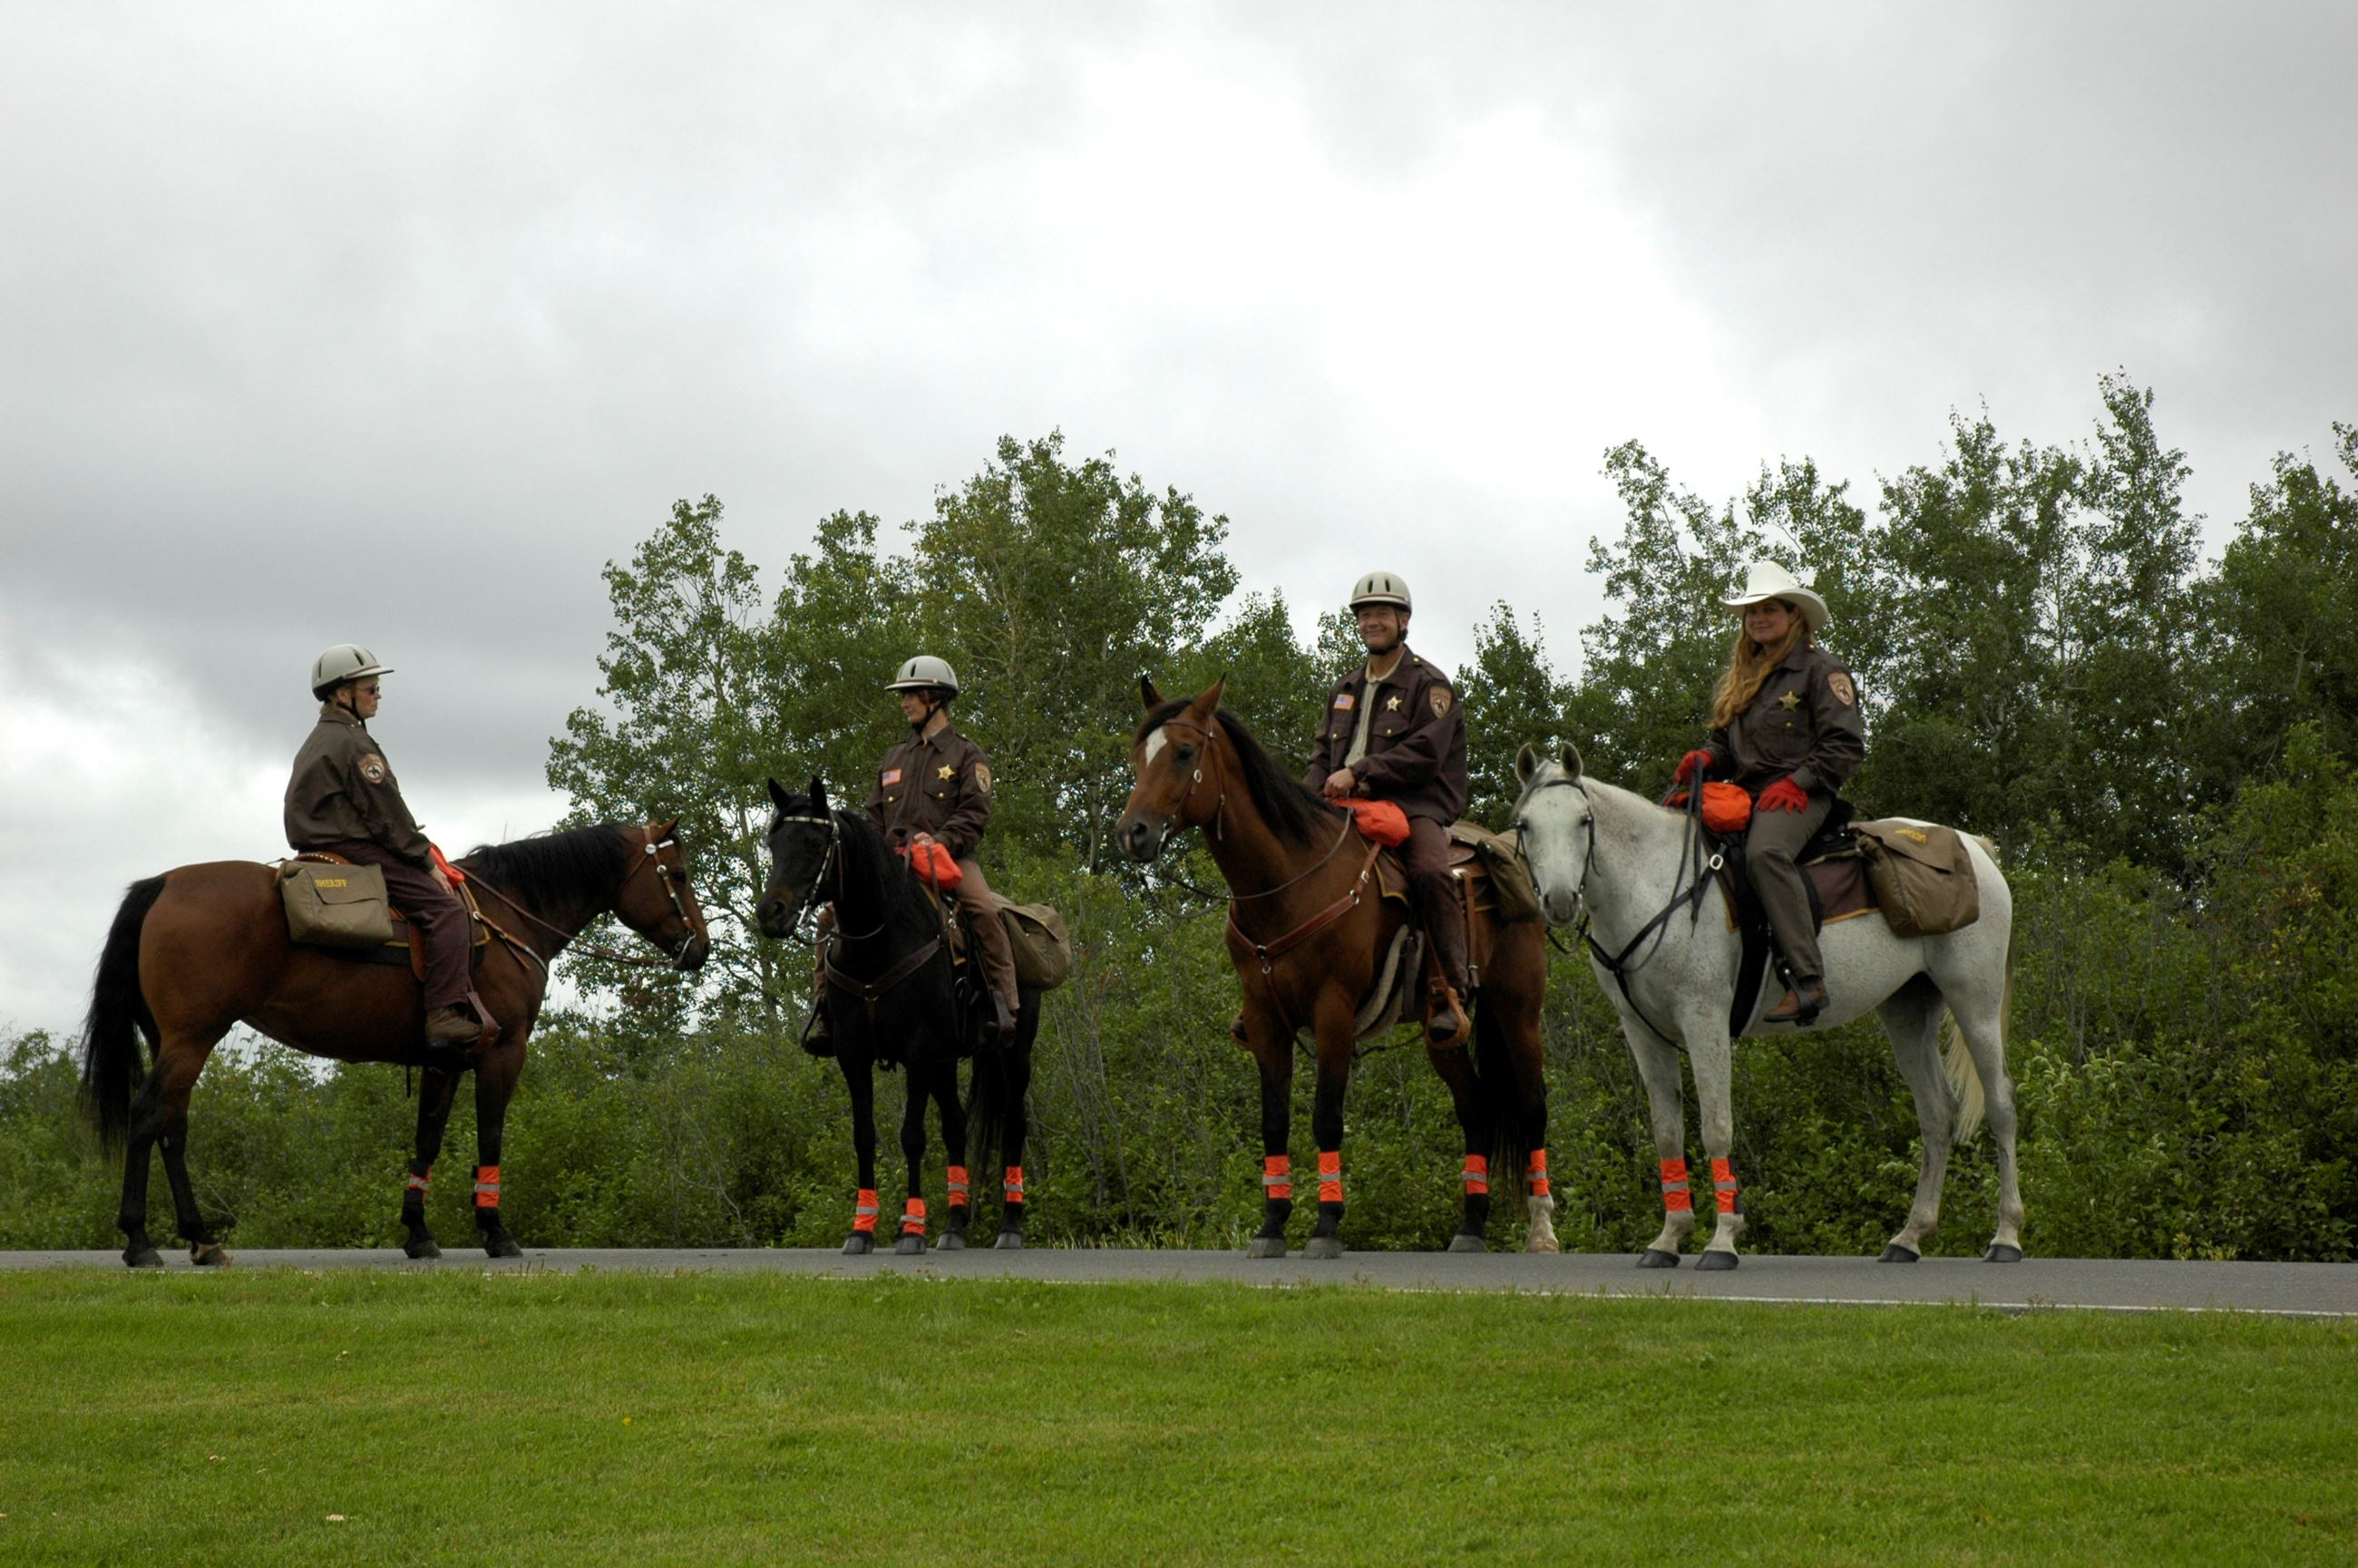 Four mounted officers with emergency packs